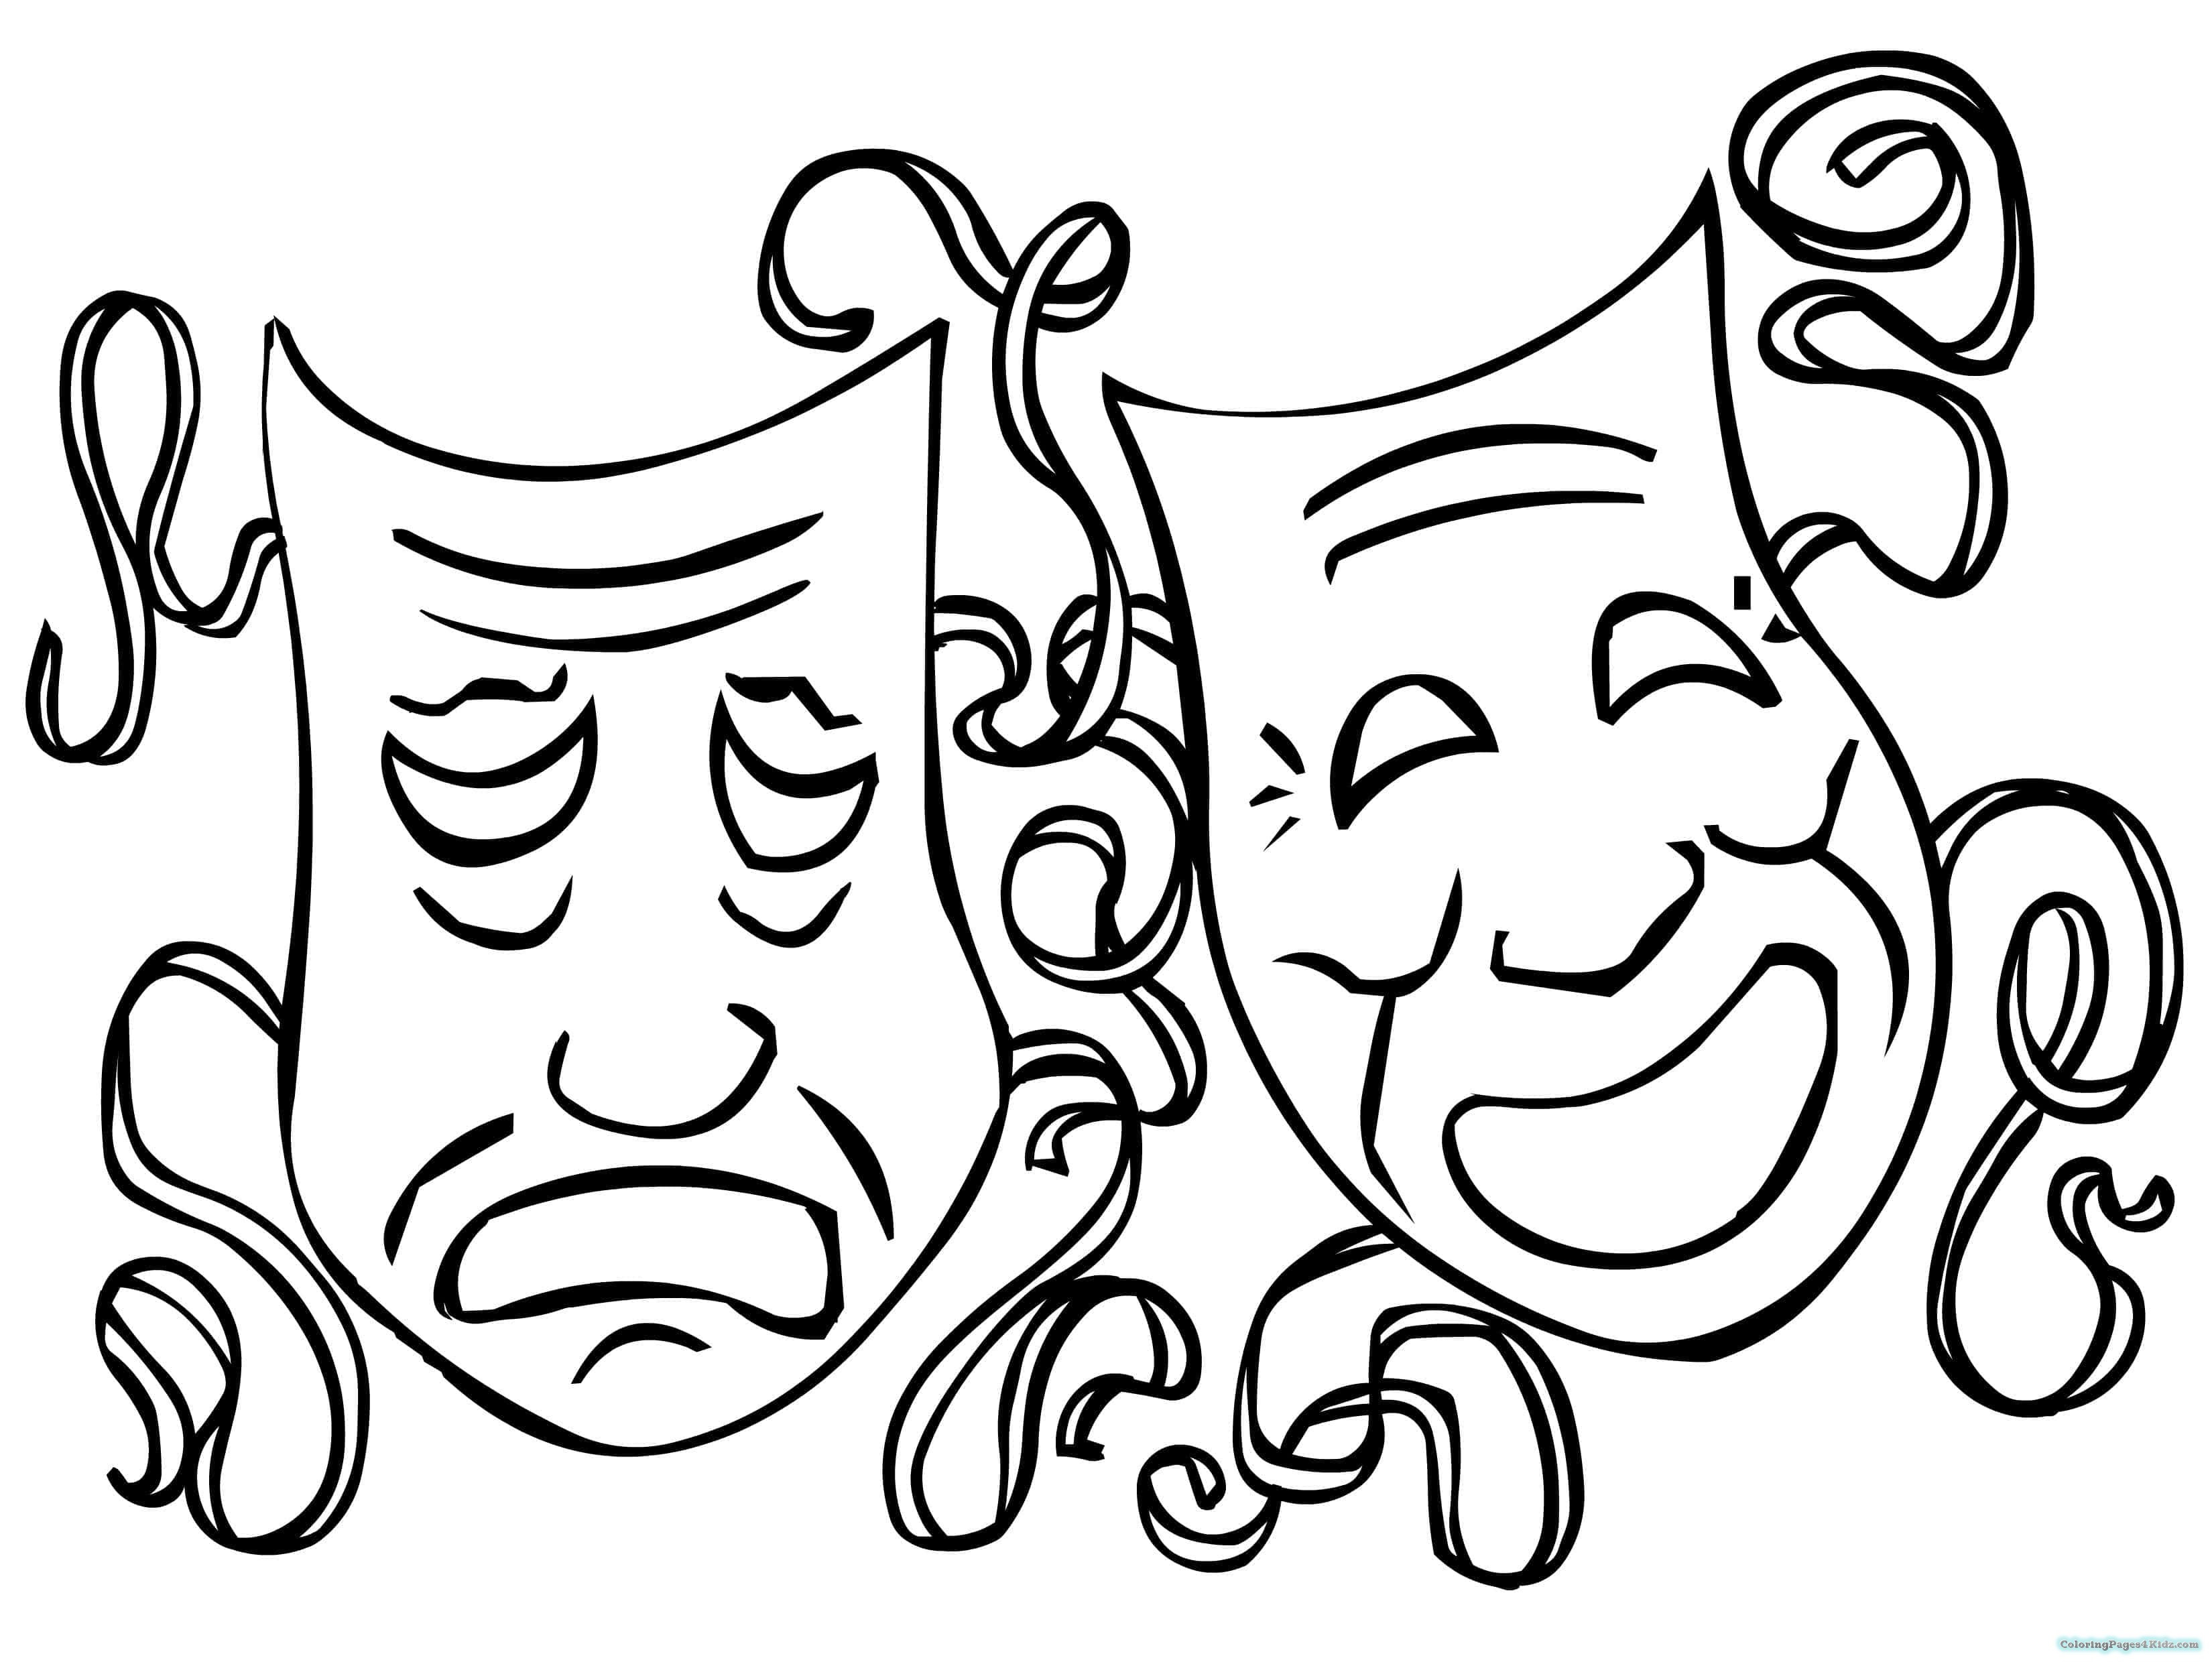 Mardi Gras Coloring Sheets For Kids  Mardi Gras Mask Coloring Pages For Kids